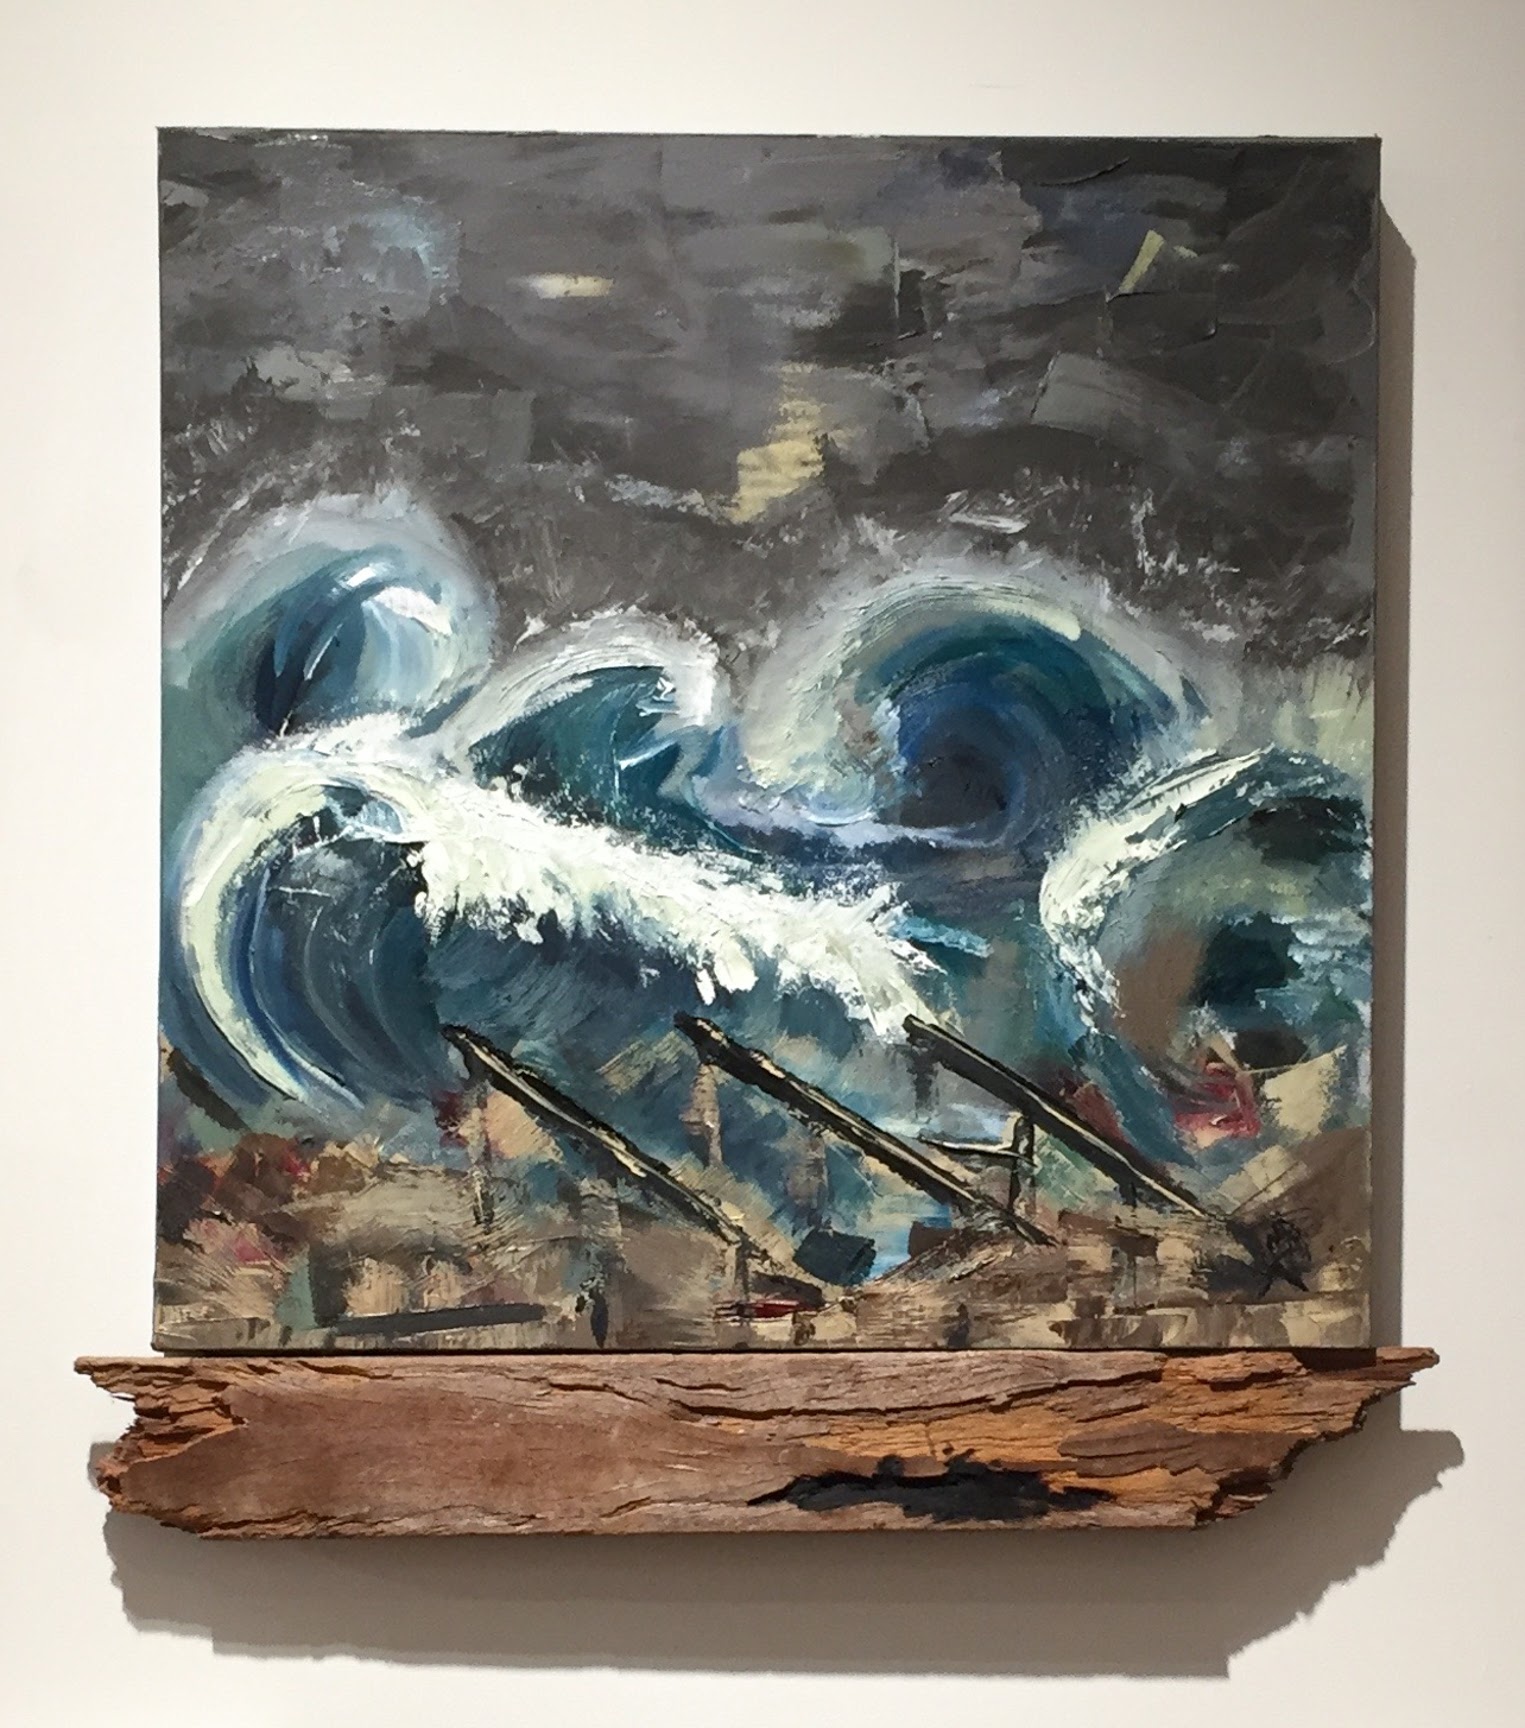 Homage to Superstorm Sandy, 27.5 x 27, Oil on Canvas w/boardwalk remnant